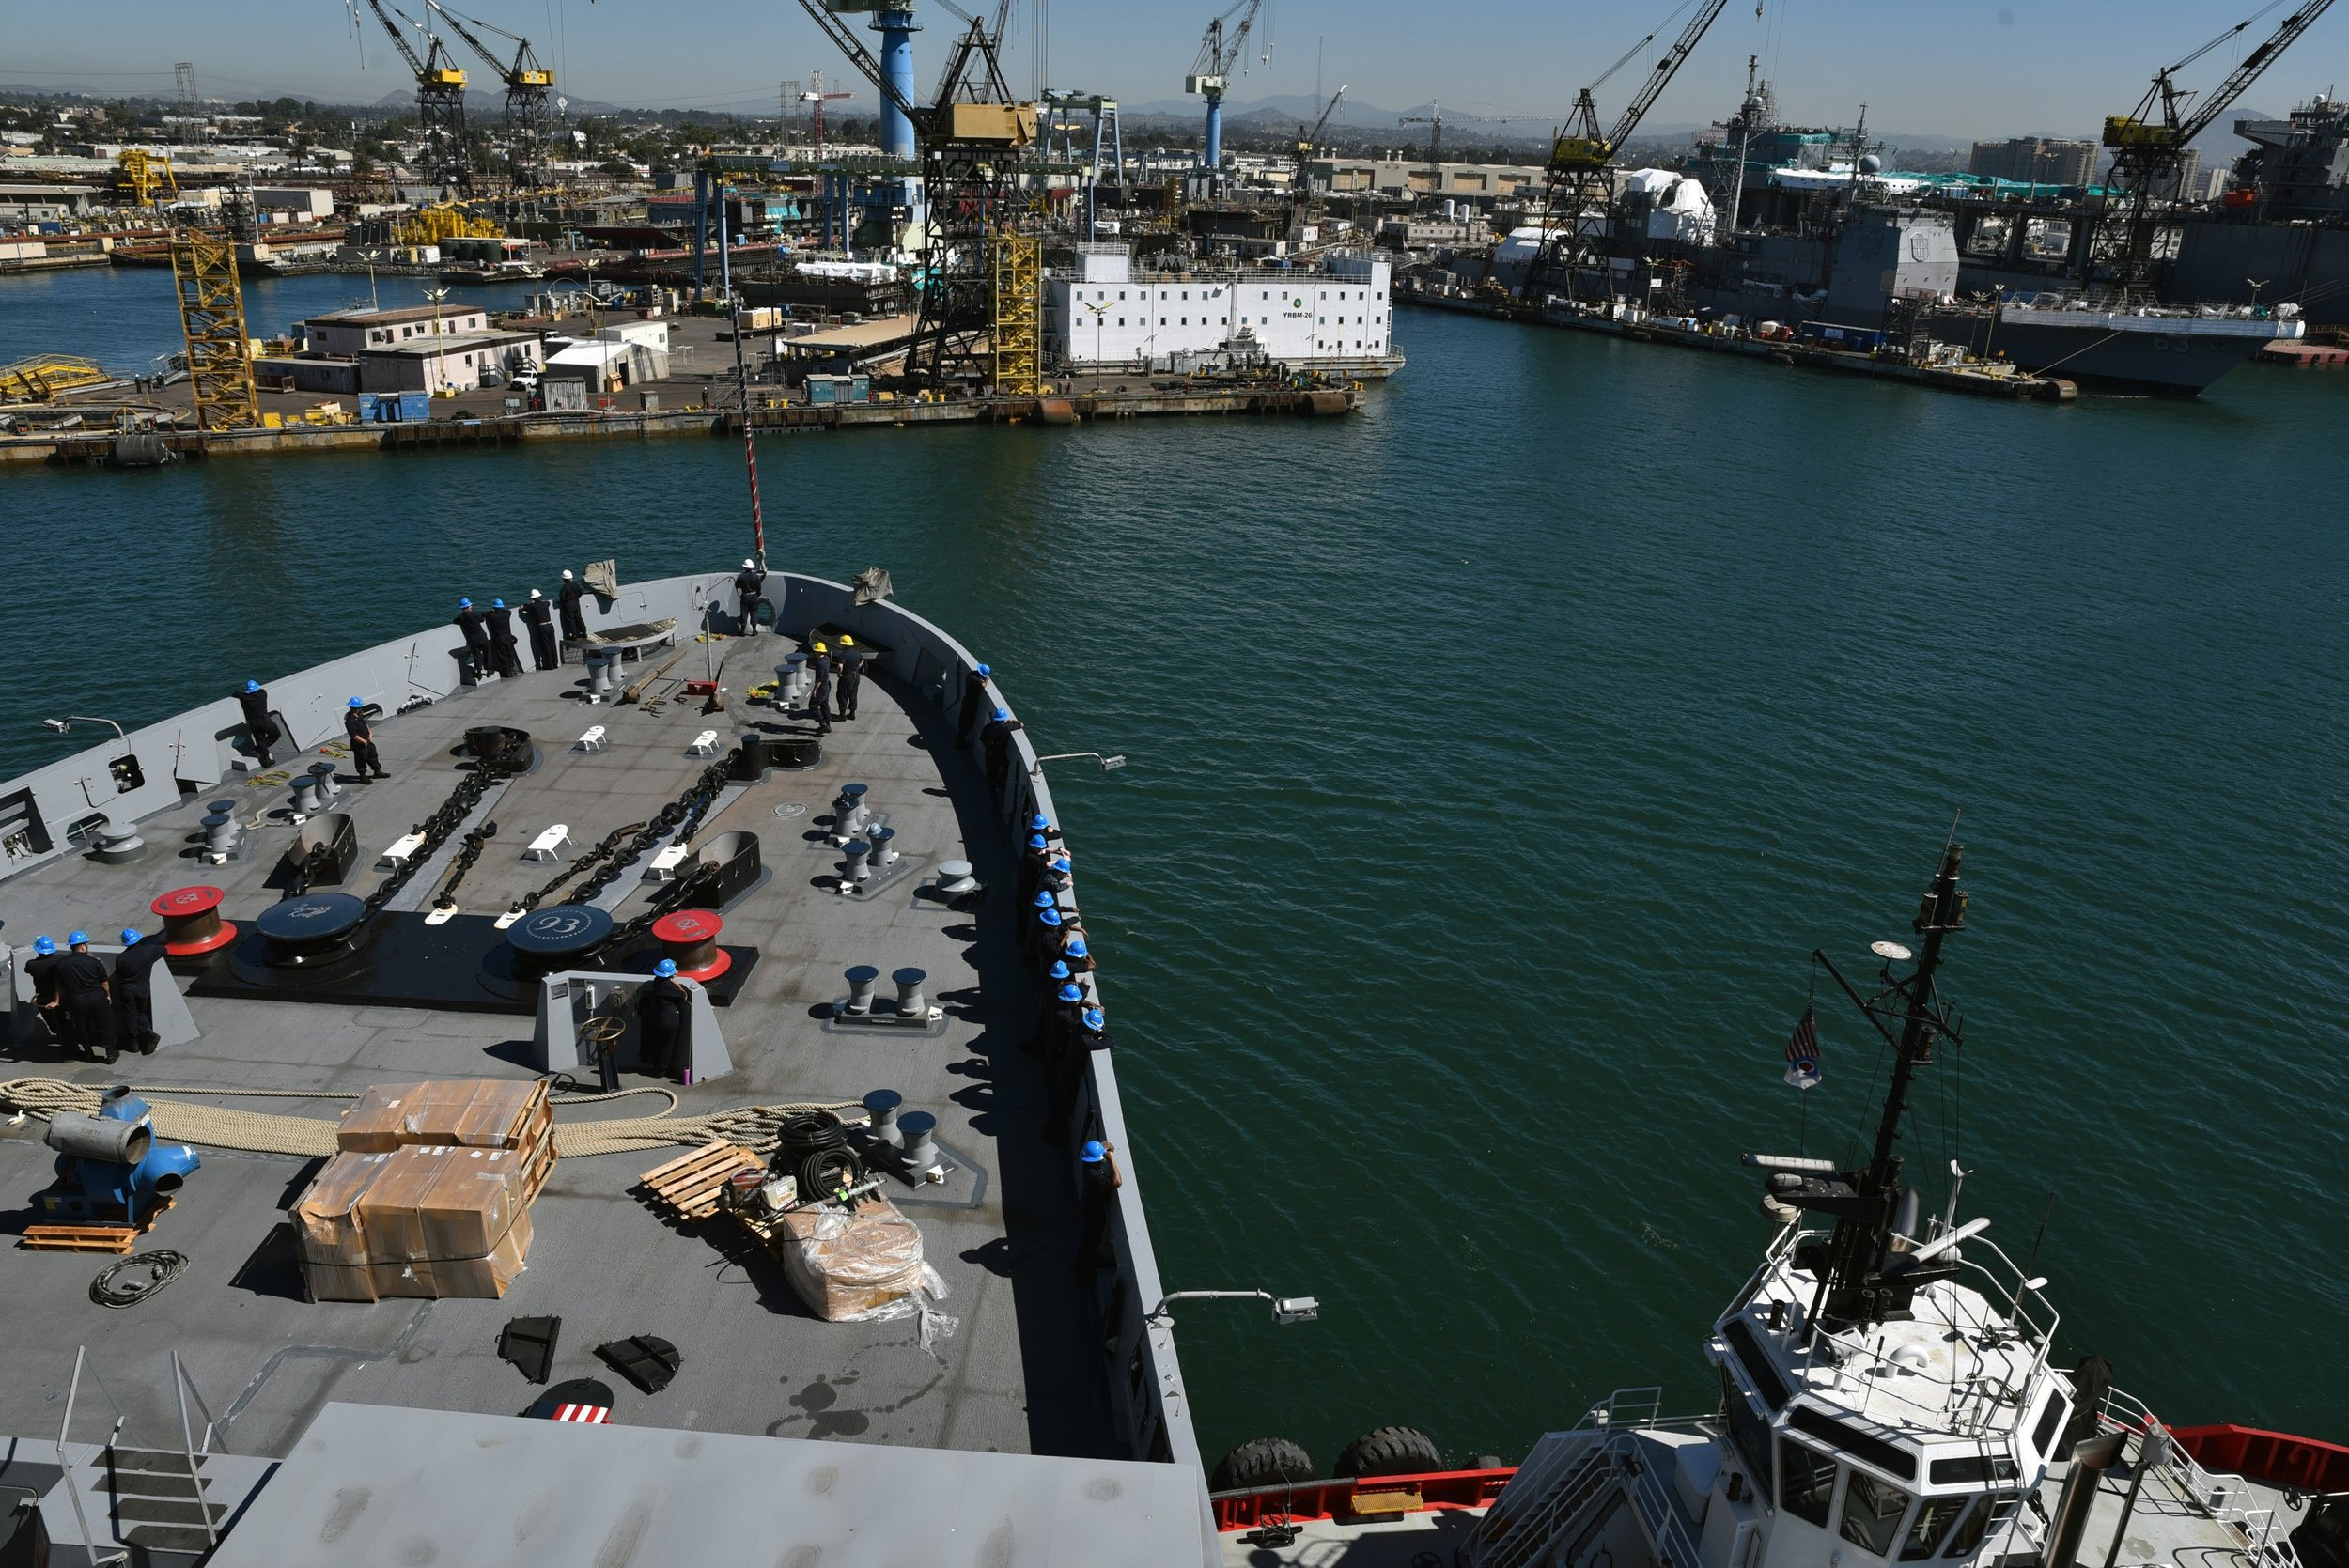 USS Somerset (LPD-25) arrives at General Dynamic's NASSCO shipyard in San Diego for a planned Chief of Naval Operations maintenance availability in 2017. US Navy Photo